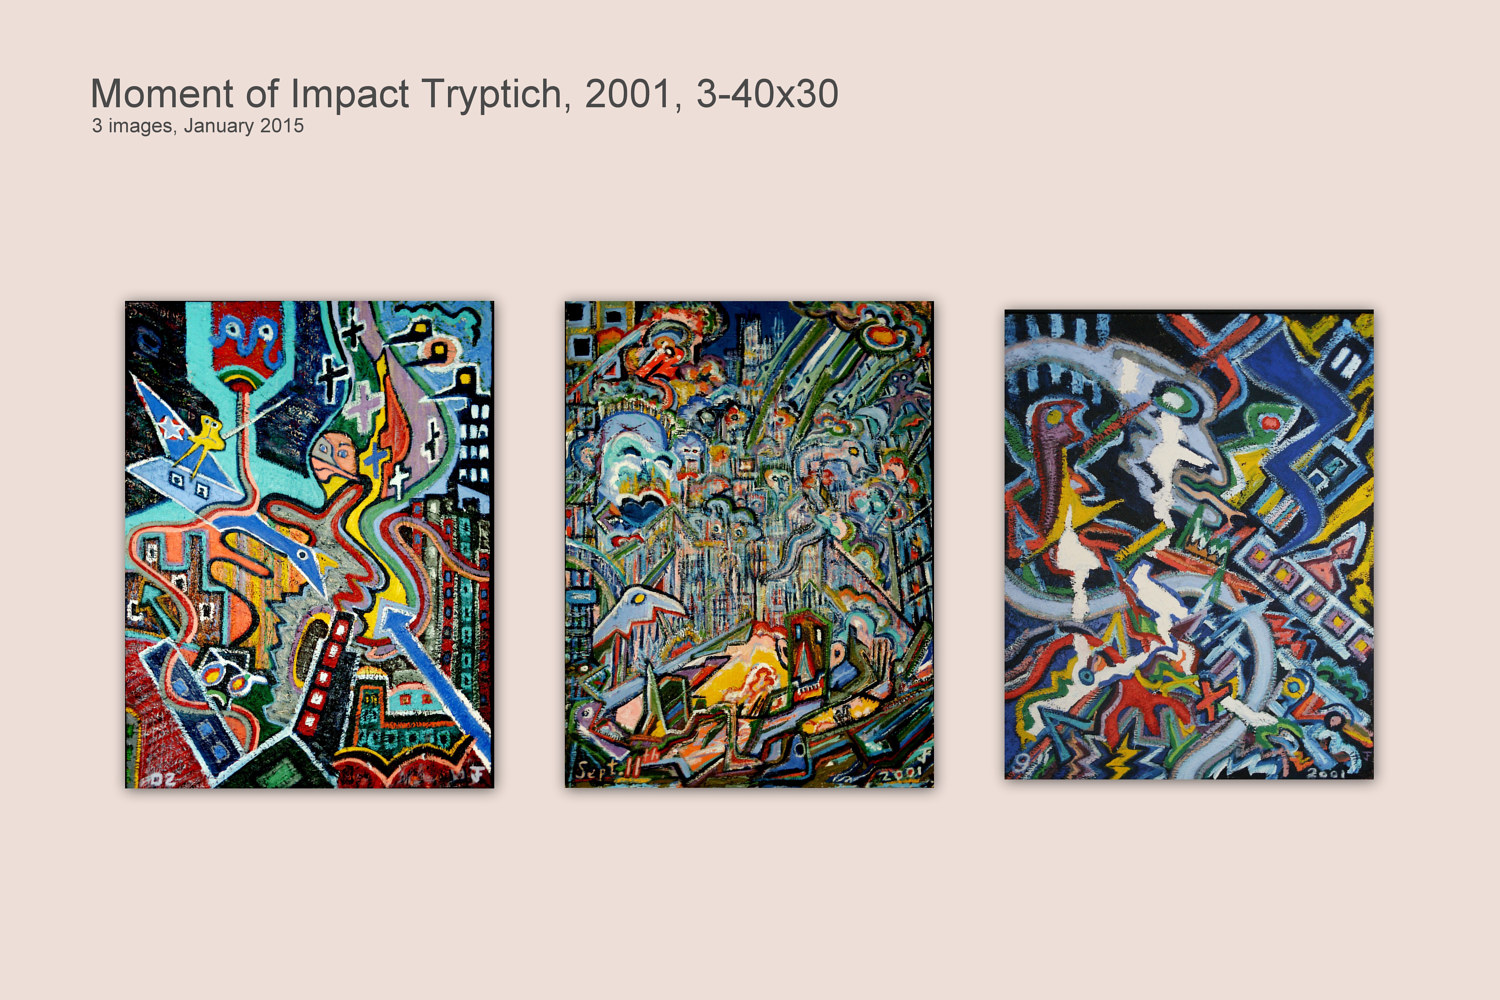 Moment of Impact Tryptich, 2001, 3-40x30 by Jeffrey Fine